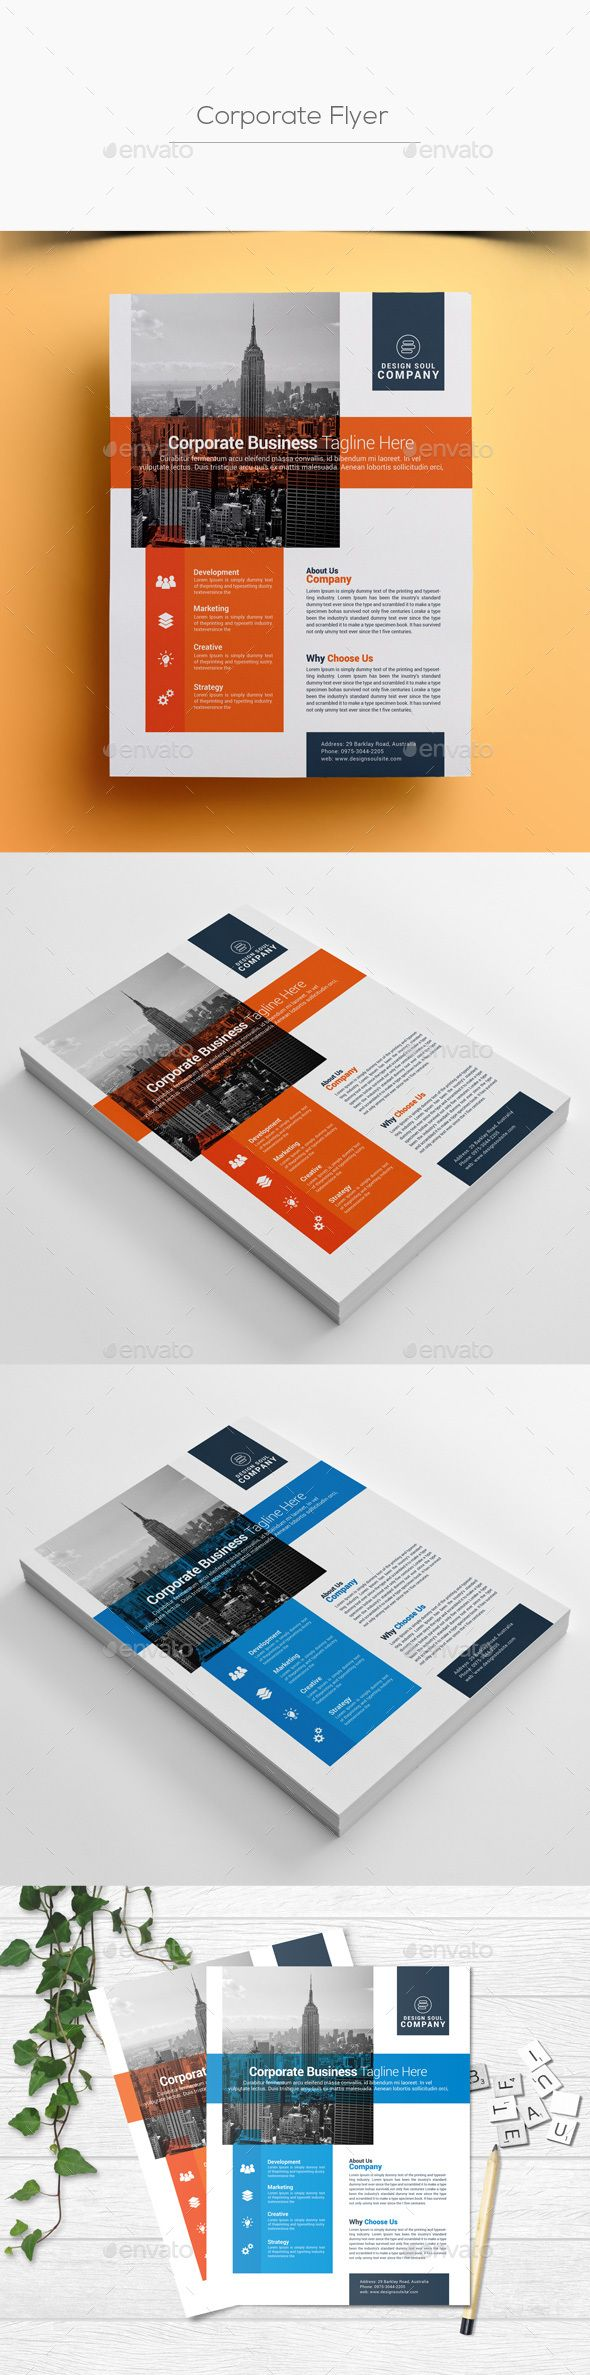 25 best ideas about flyer template on pinterest flyer design flyer